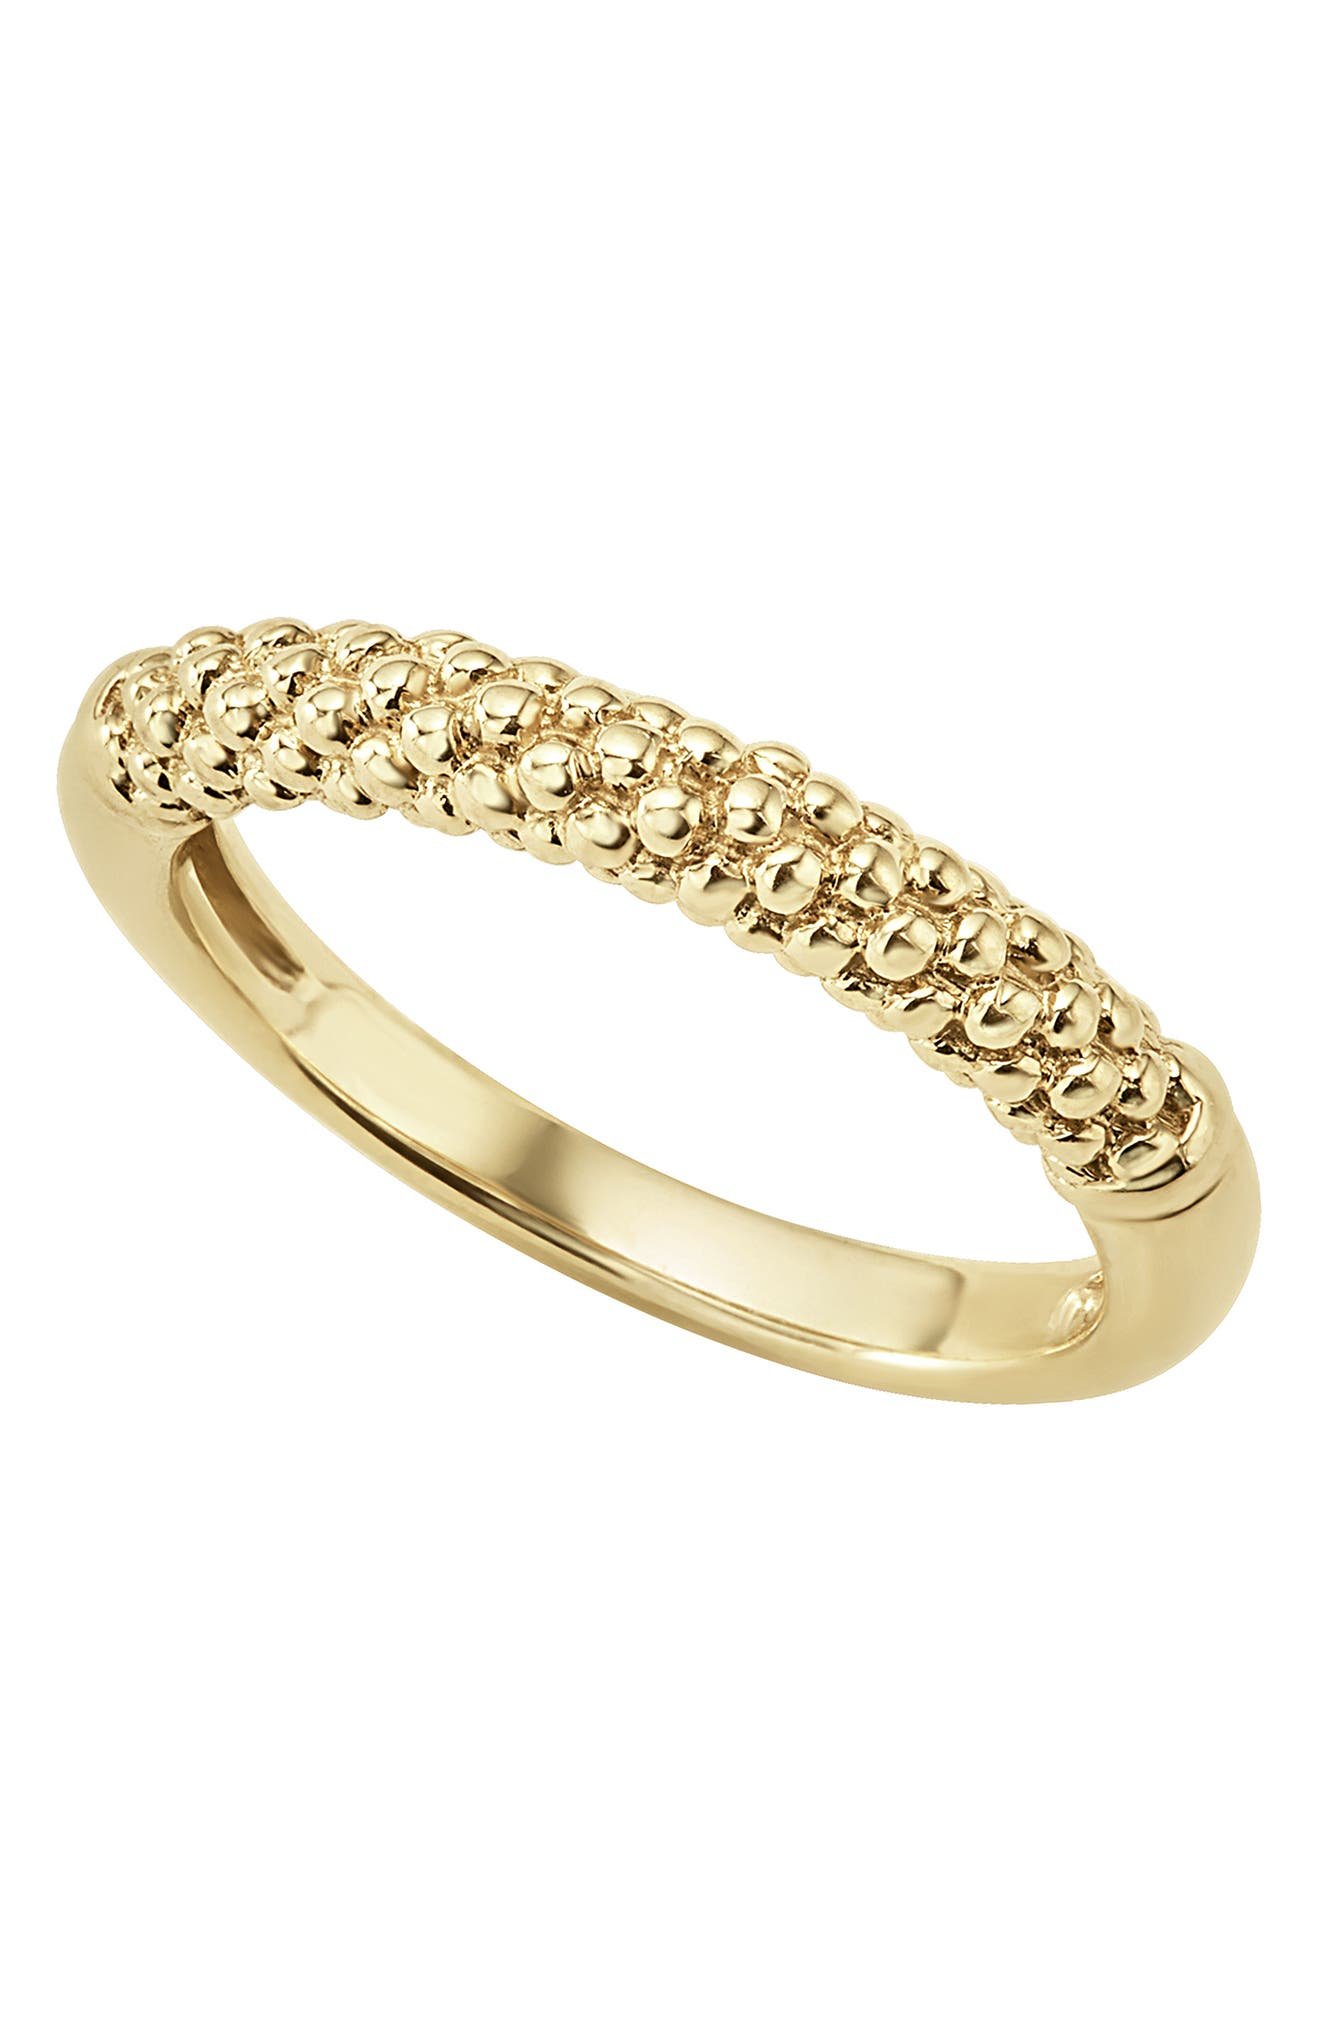 Caviar Band Ring,                             Alternate thumbnail 5, color,                             GOLD